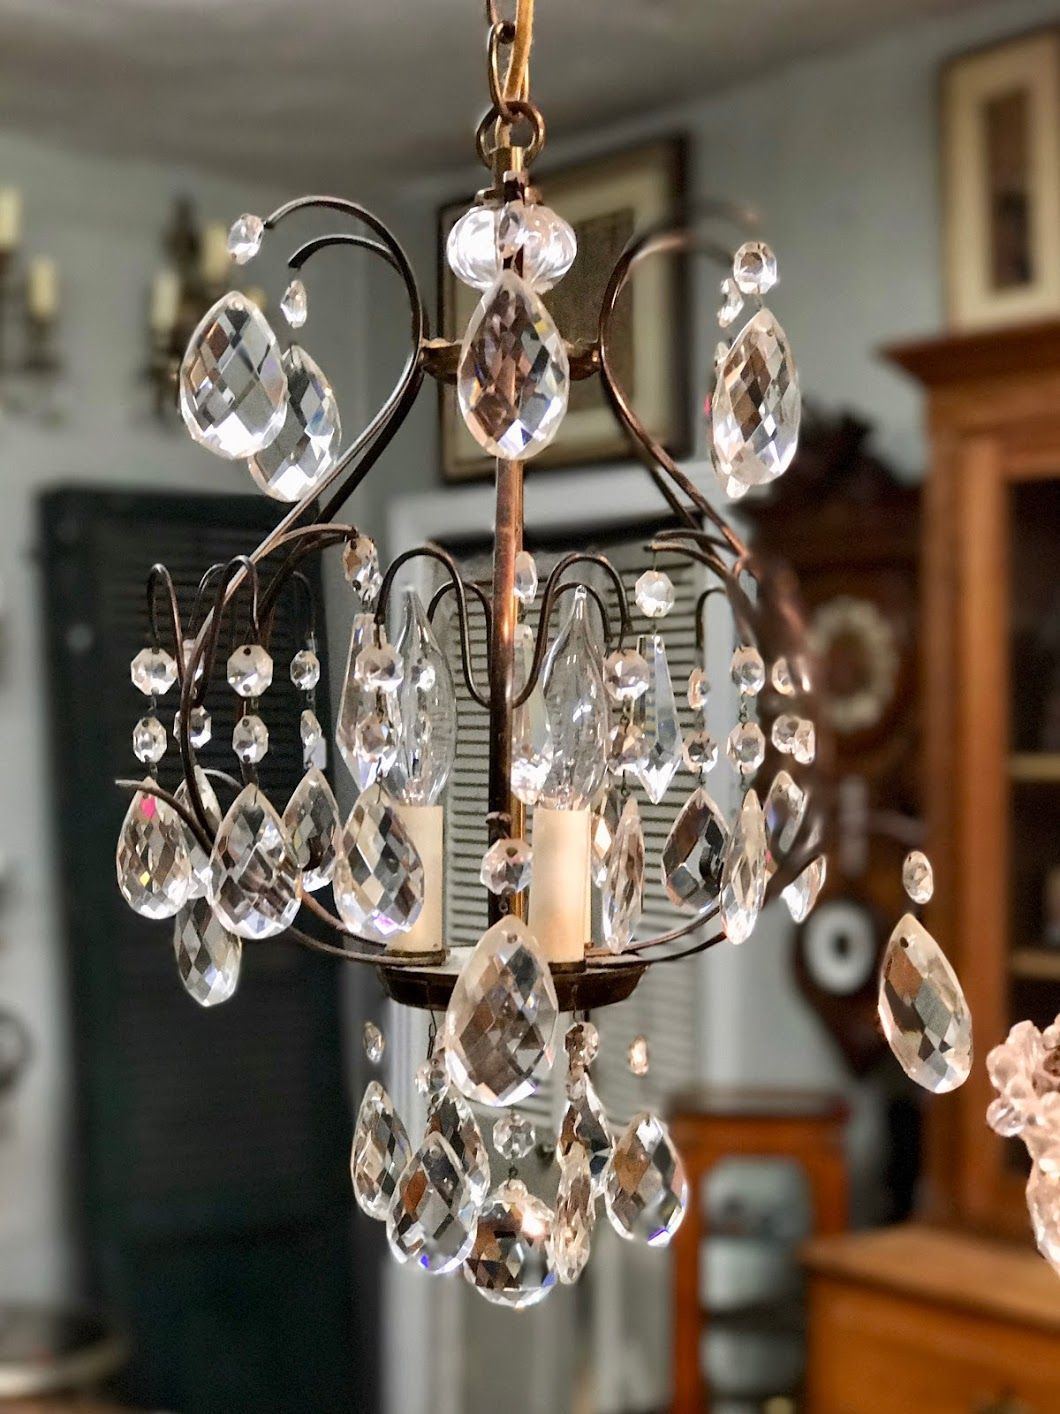 Petite crystal chandelier 325 country garden antiques 147 parkhouse petite crystal chandelier 325 country garden antiques 147 parkhouse dallas tx 75207 aloadofball Image collections